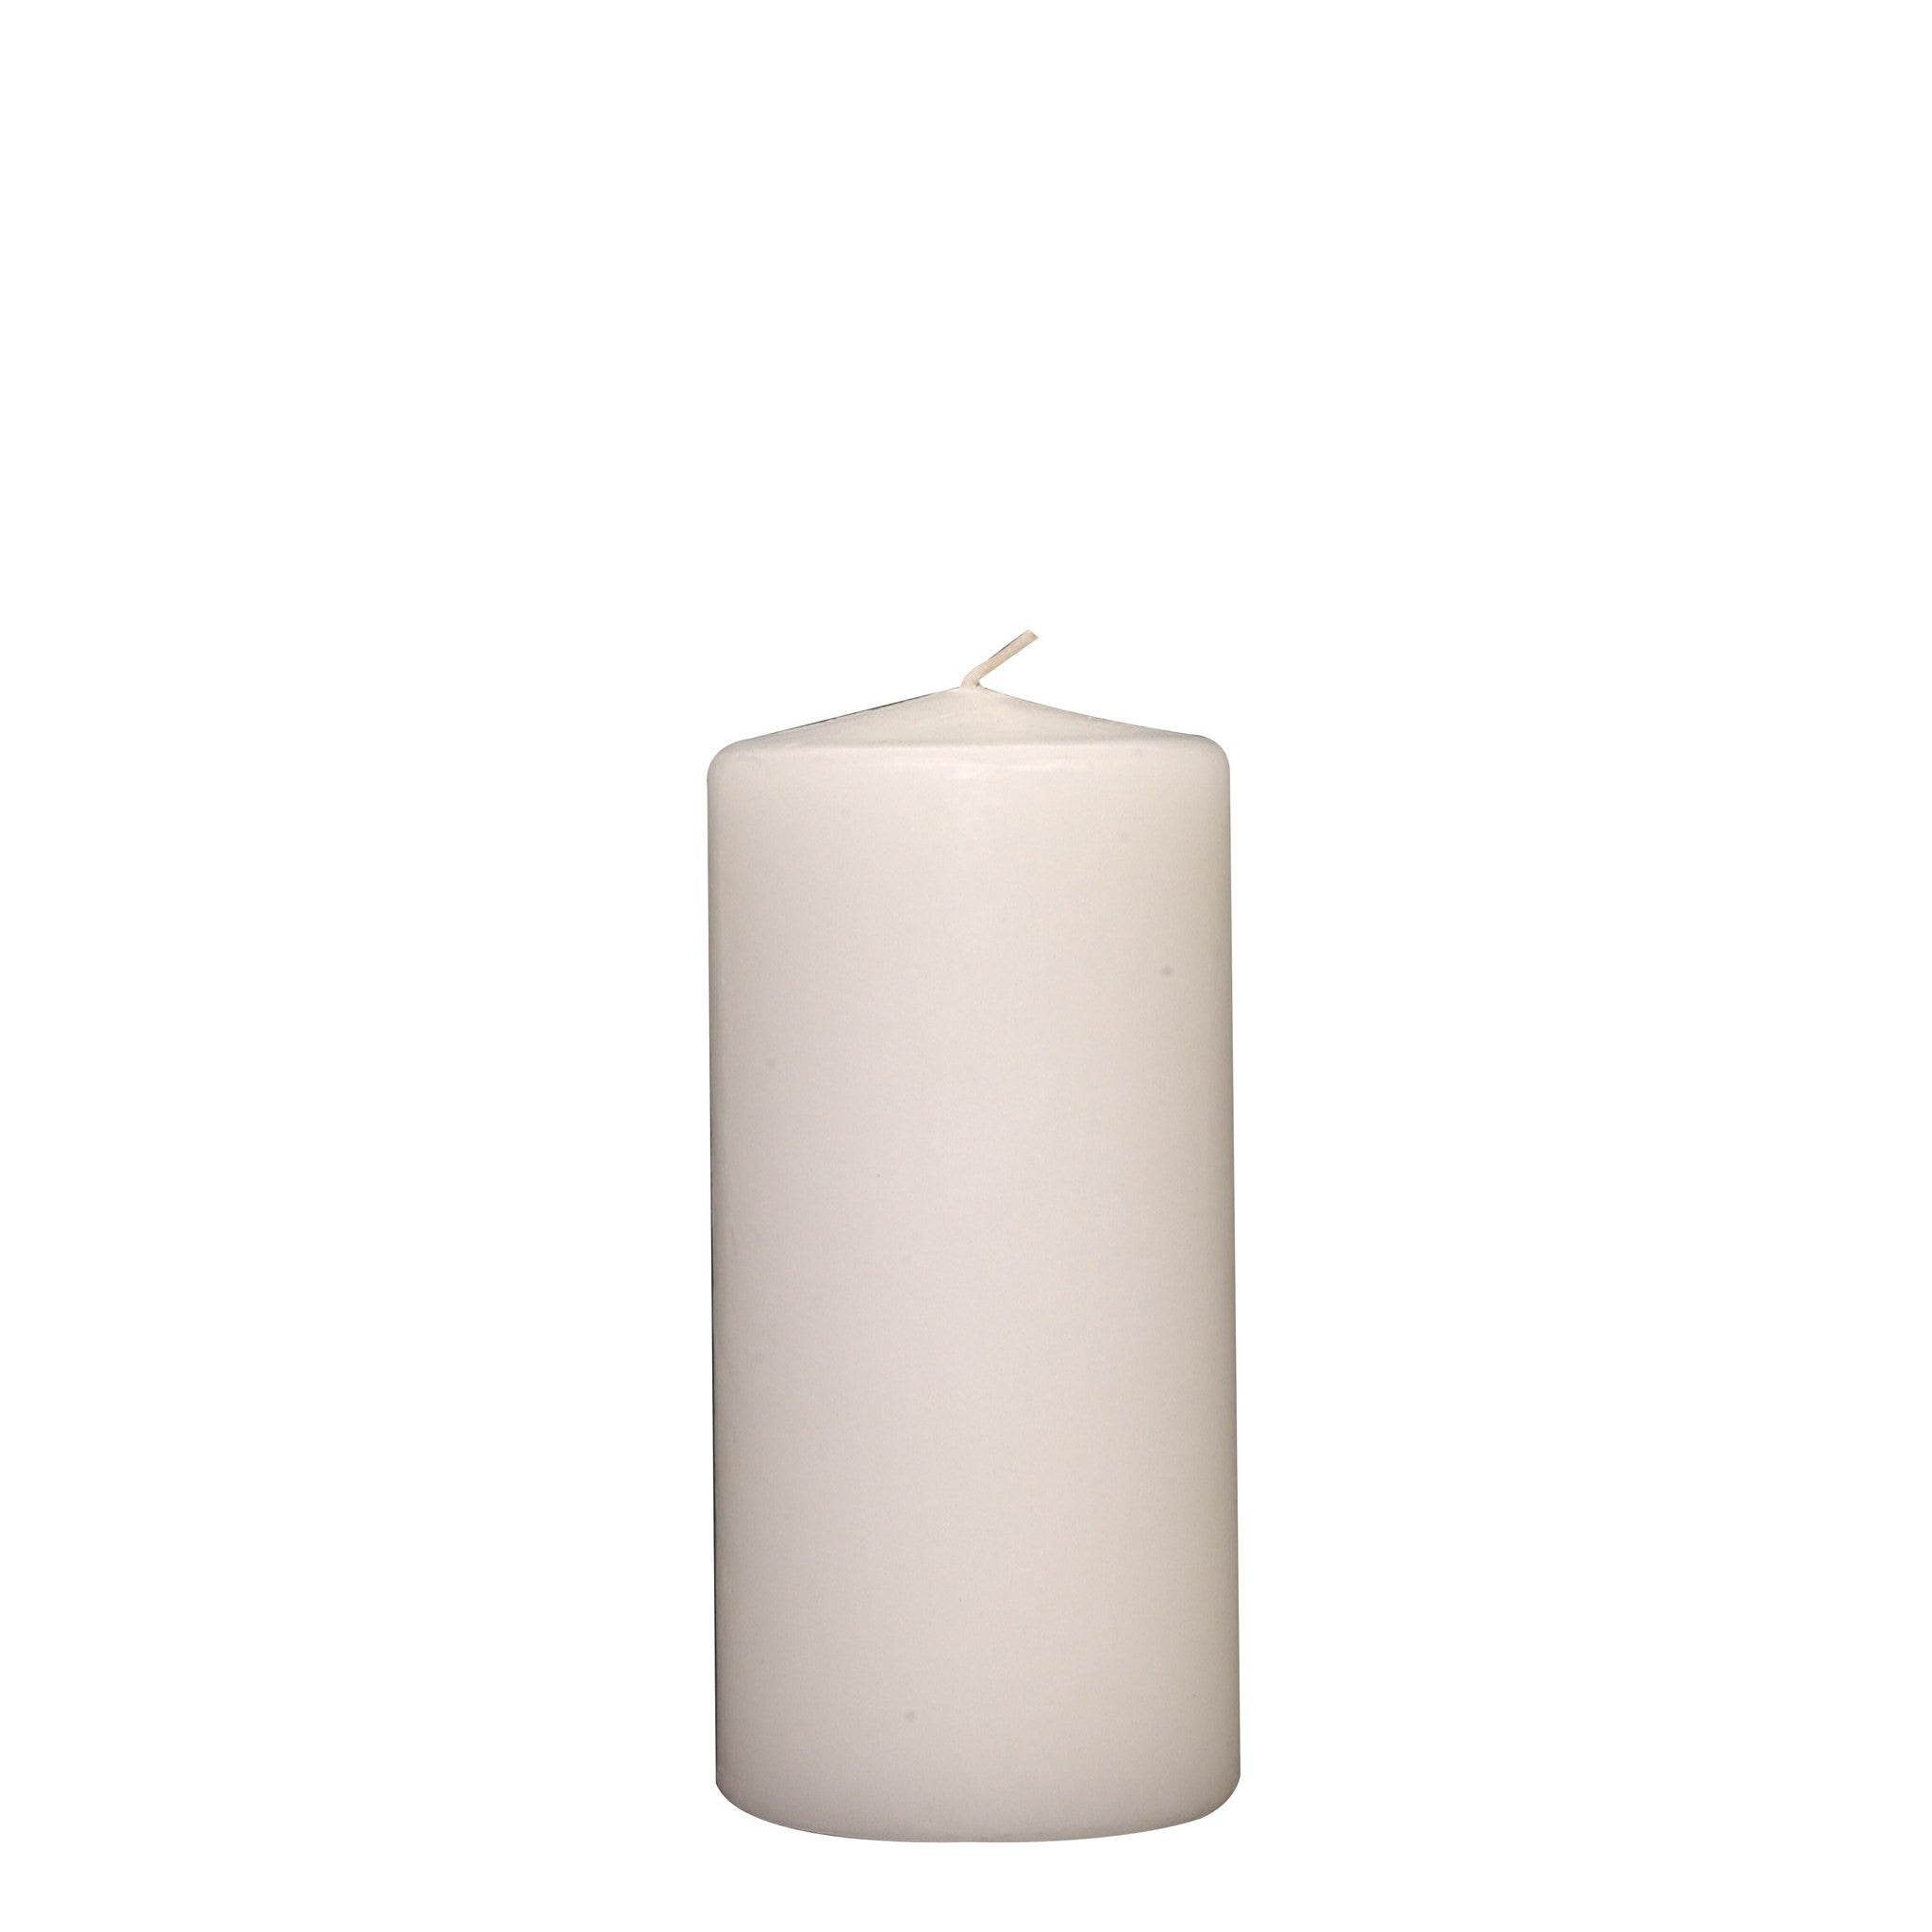 3x6 Unscented White Pillar Candle - Candlemart.com - 4